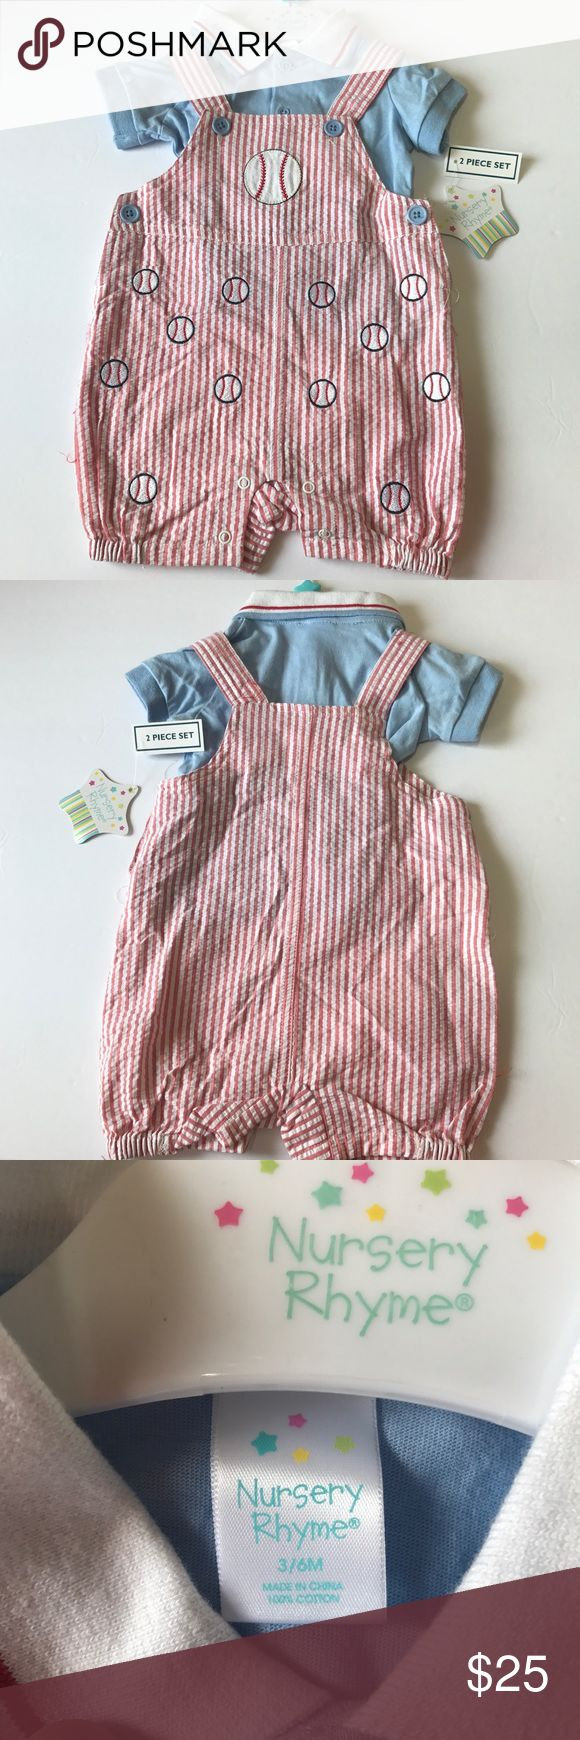 Nursery Rhyme Baseball Smocked Short All 2Pcs Set Paired with a classic polo, these shortalls lend charm and style to his wardrobe. Crafted with a lightly textured seersucker fabric and baseball appliques that keep your little slugger looking adorably handsome, this duo is perfect for any baby boy. 2-piece set Button closure Collar neck Short sleeves Seersucker fabric Machine washable Cotton, polyester Import Nursery Rhyme Matching Sets